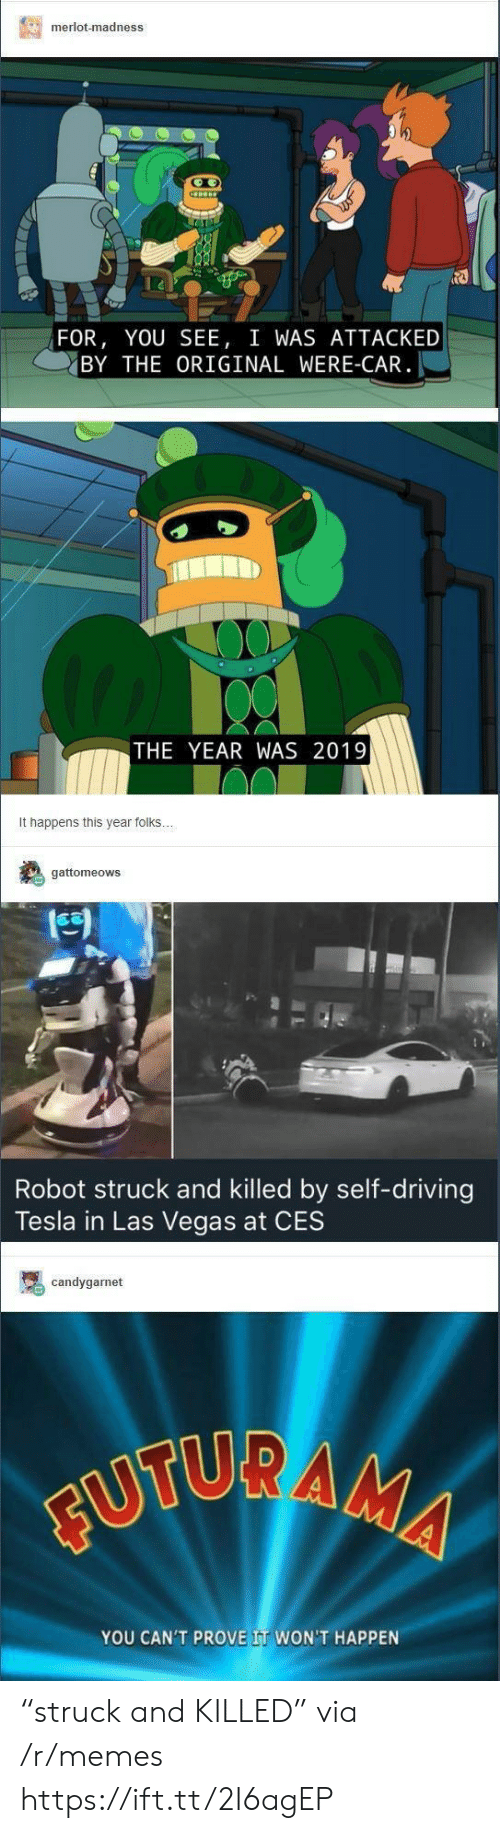 """Las Vegas: merlot-madness  FOR, YOU SEE, I WAS ATTACKED  BY THE ORIGINAL WERE-CAR  THE YEAR WAS 2019  It happens this year folks  gattomeows  Robot struck and killed by self-driving  Tesla in Las Vegas at CES  candygarnet  YOU CAN'T PROVE IT WON'T HAPPEN """"struck and KILLED"""" via /r/memes https://ift.tt/2I6agEP"""